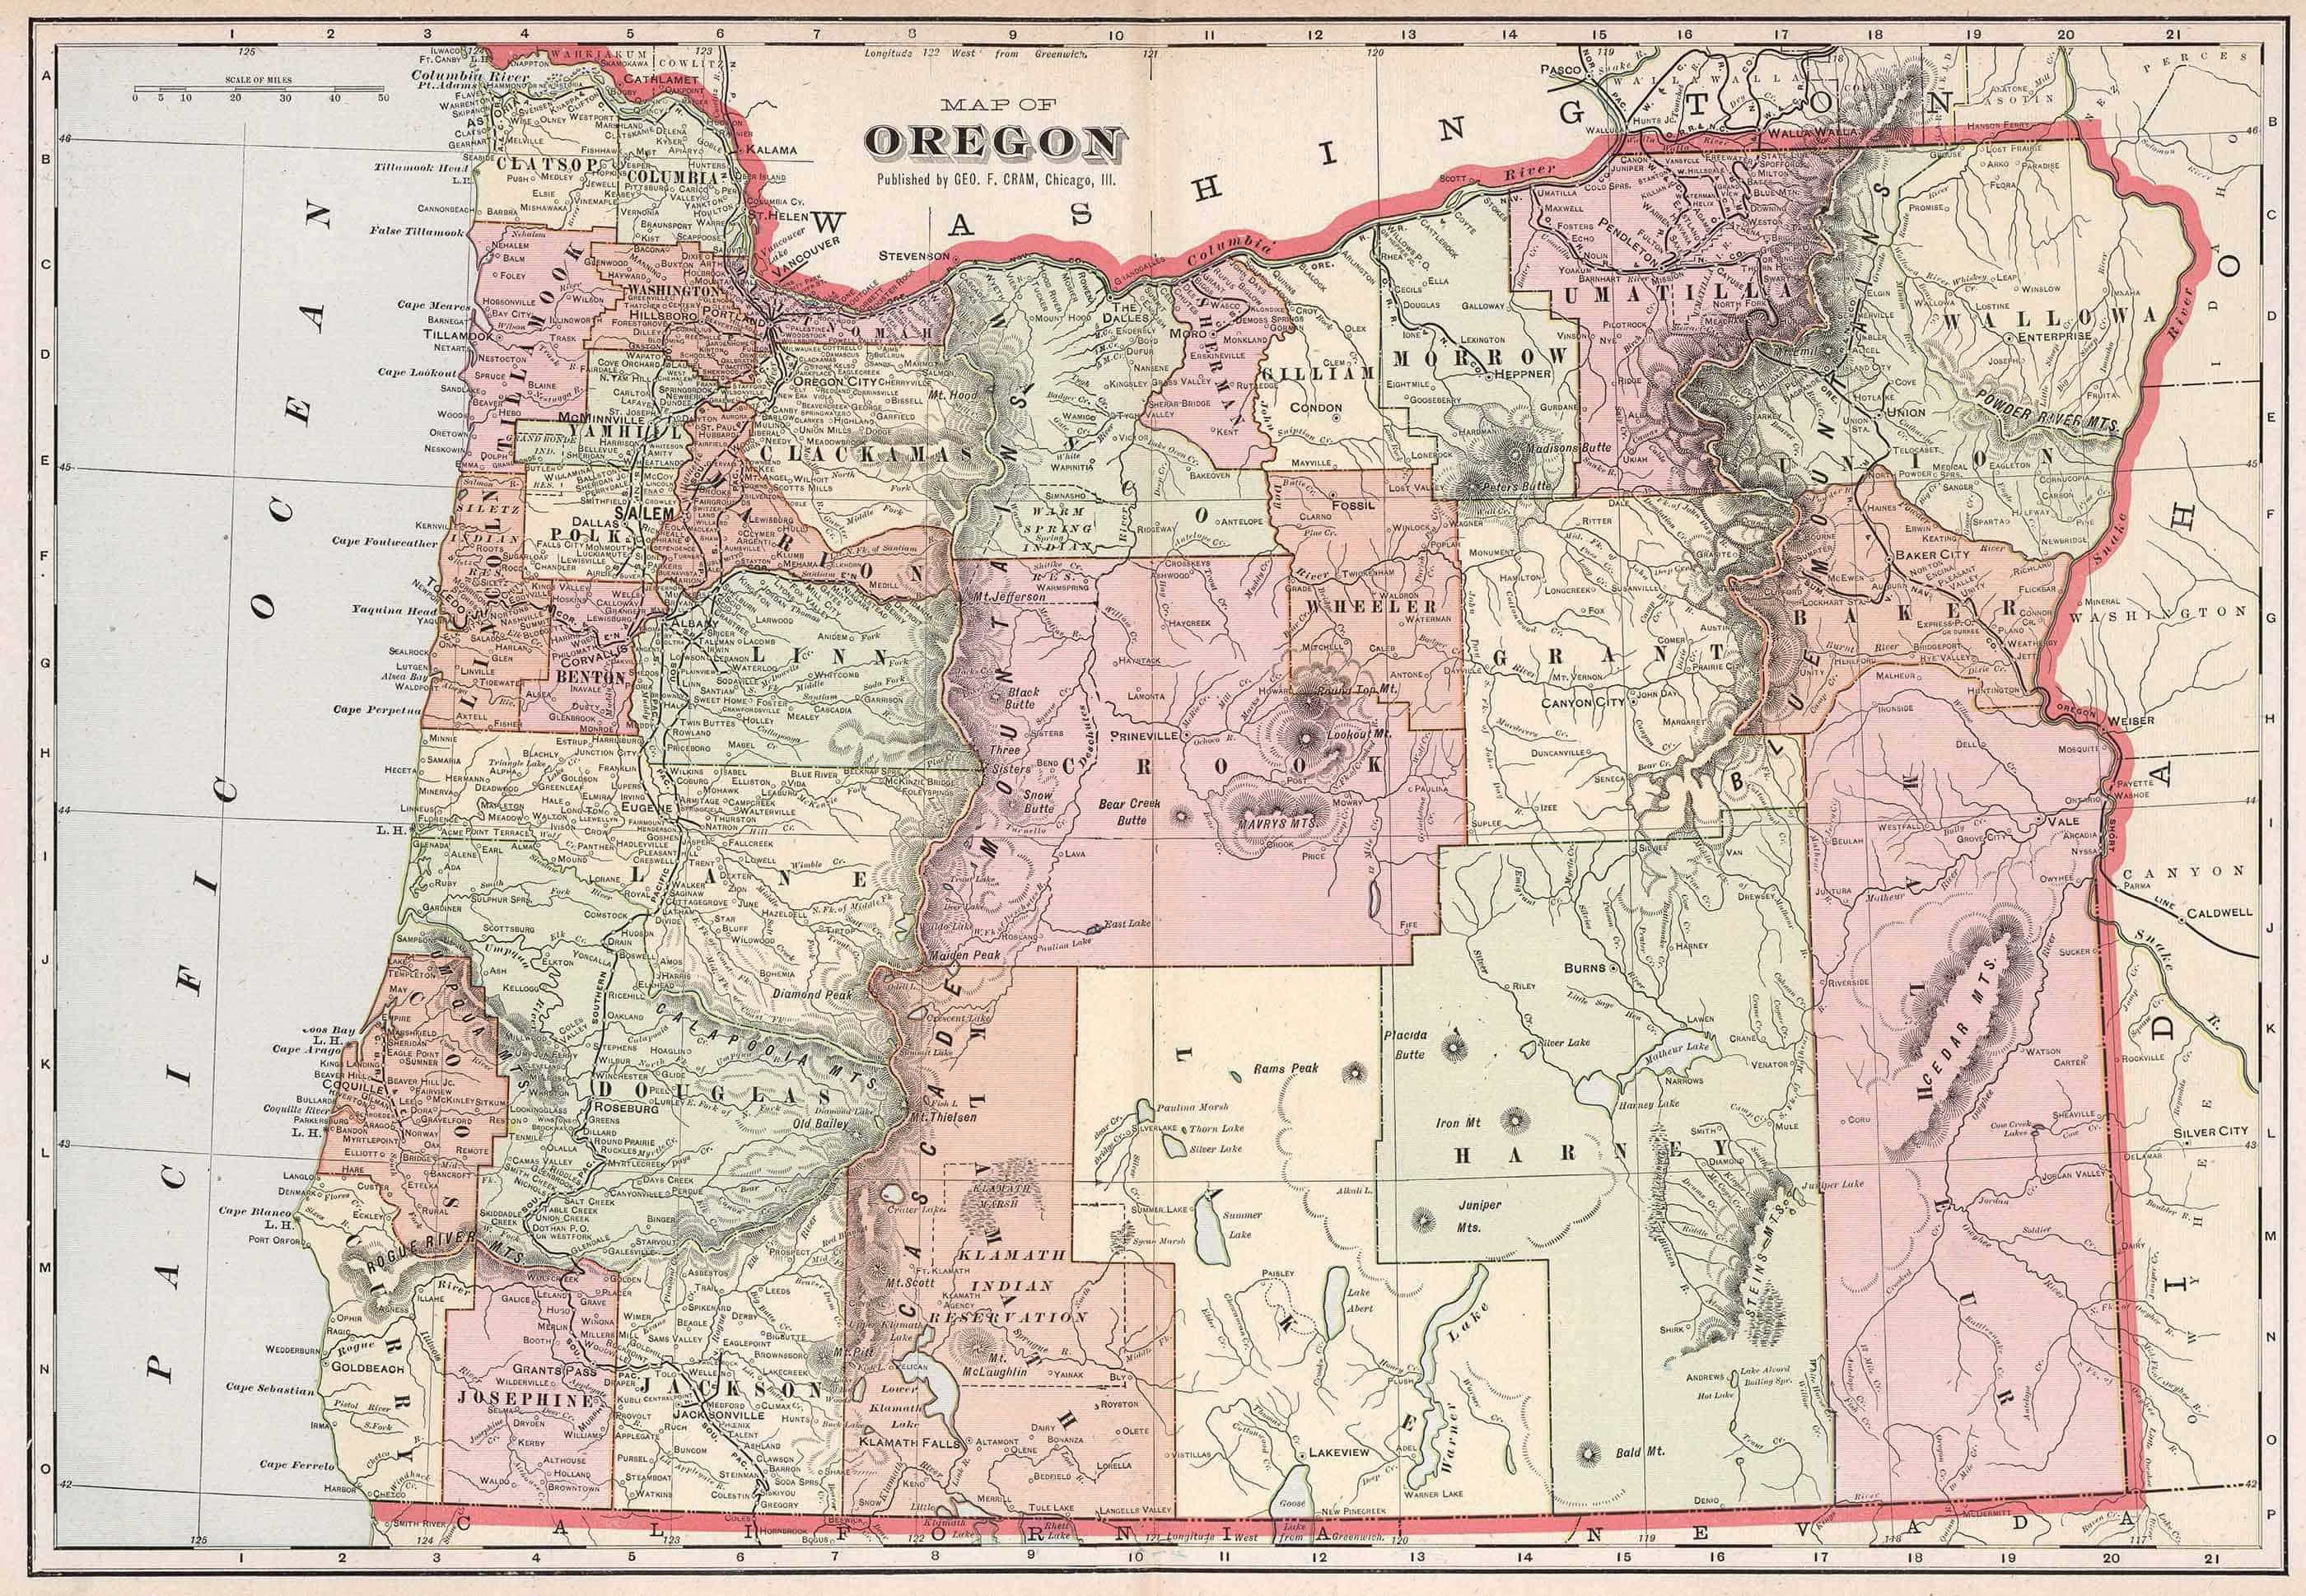 Old Historical City, County and State Maps of Oregon on global map, geographic feature, cartography of the united states, geographic information system, satellite imagery, map projection, history of cartography, early world maps, geographic coordinate system, grid reference,